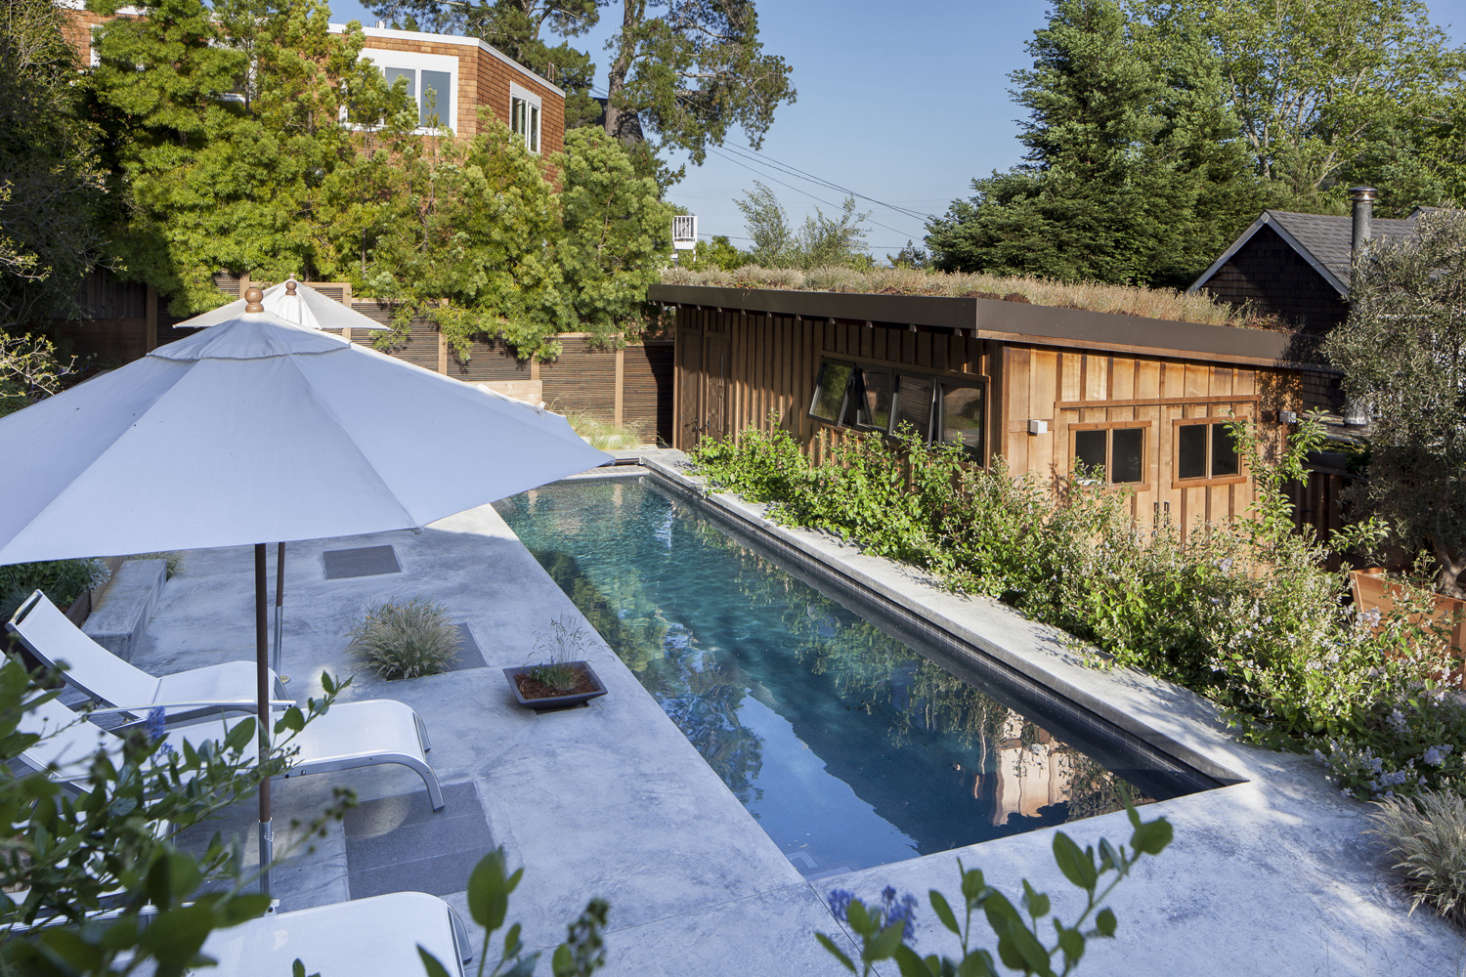 The sunken concrete pool is 36 feet long—enough for swimming laps. On the pool deck,Gargan had plots reserved for plants, both in-ground and in containers.